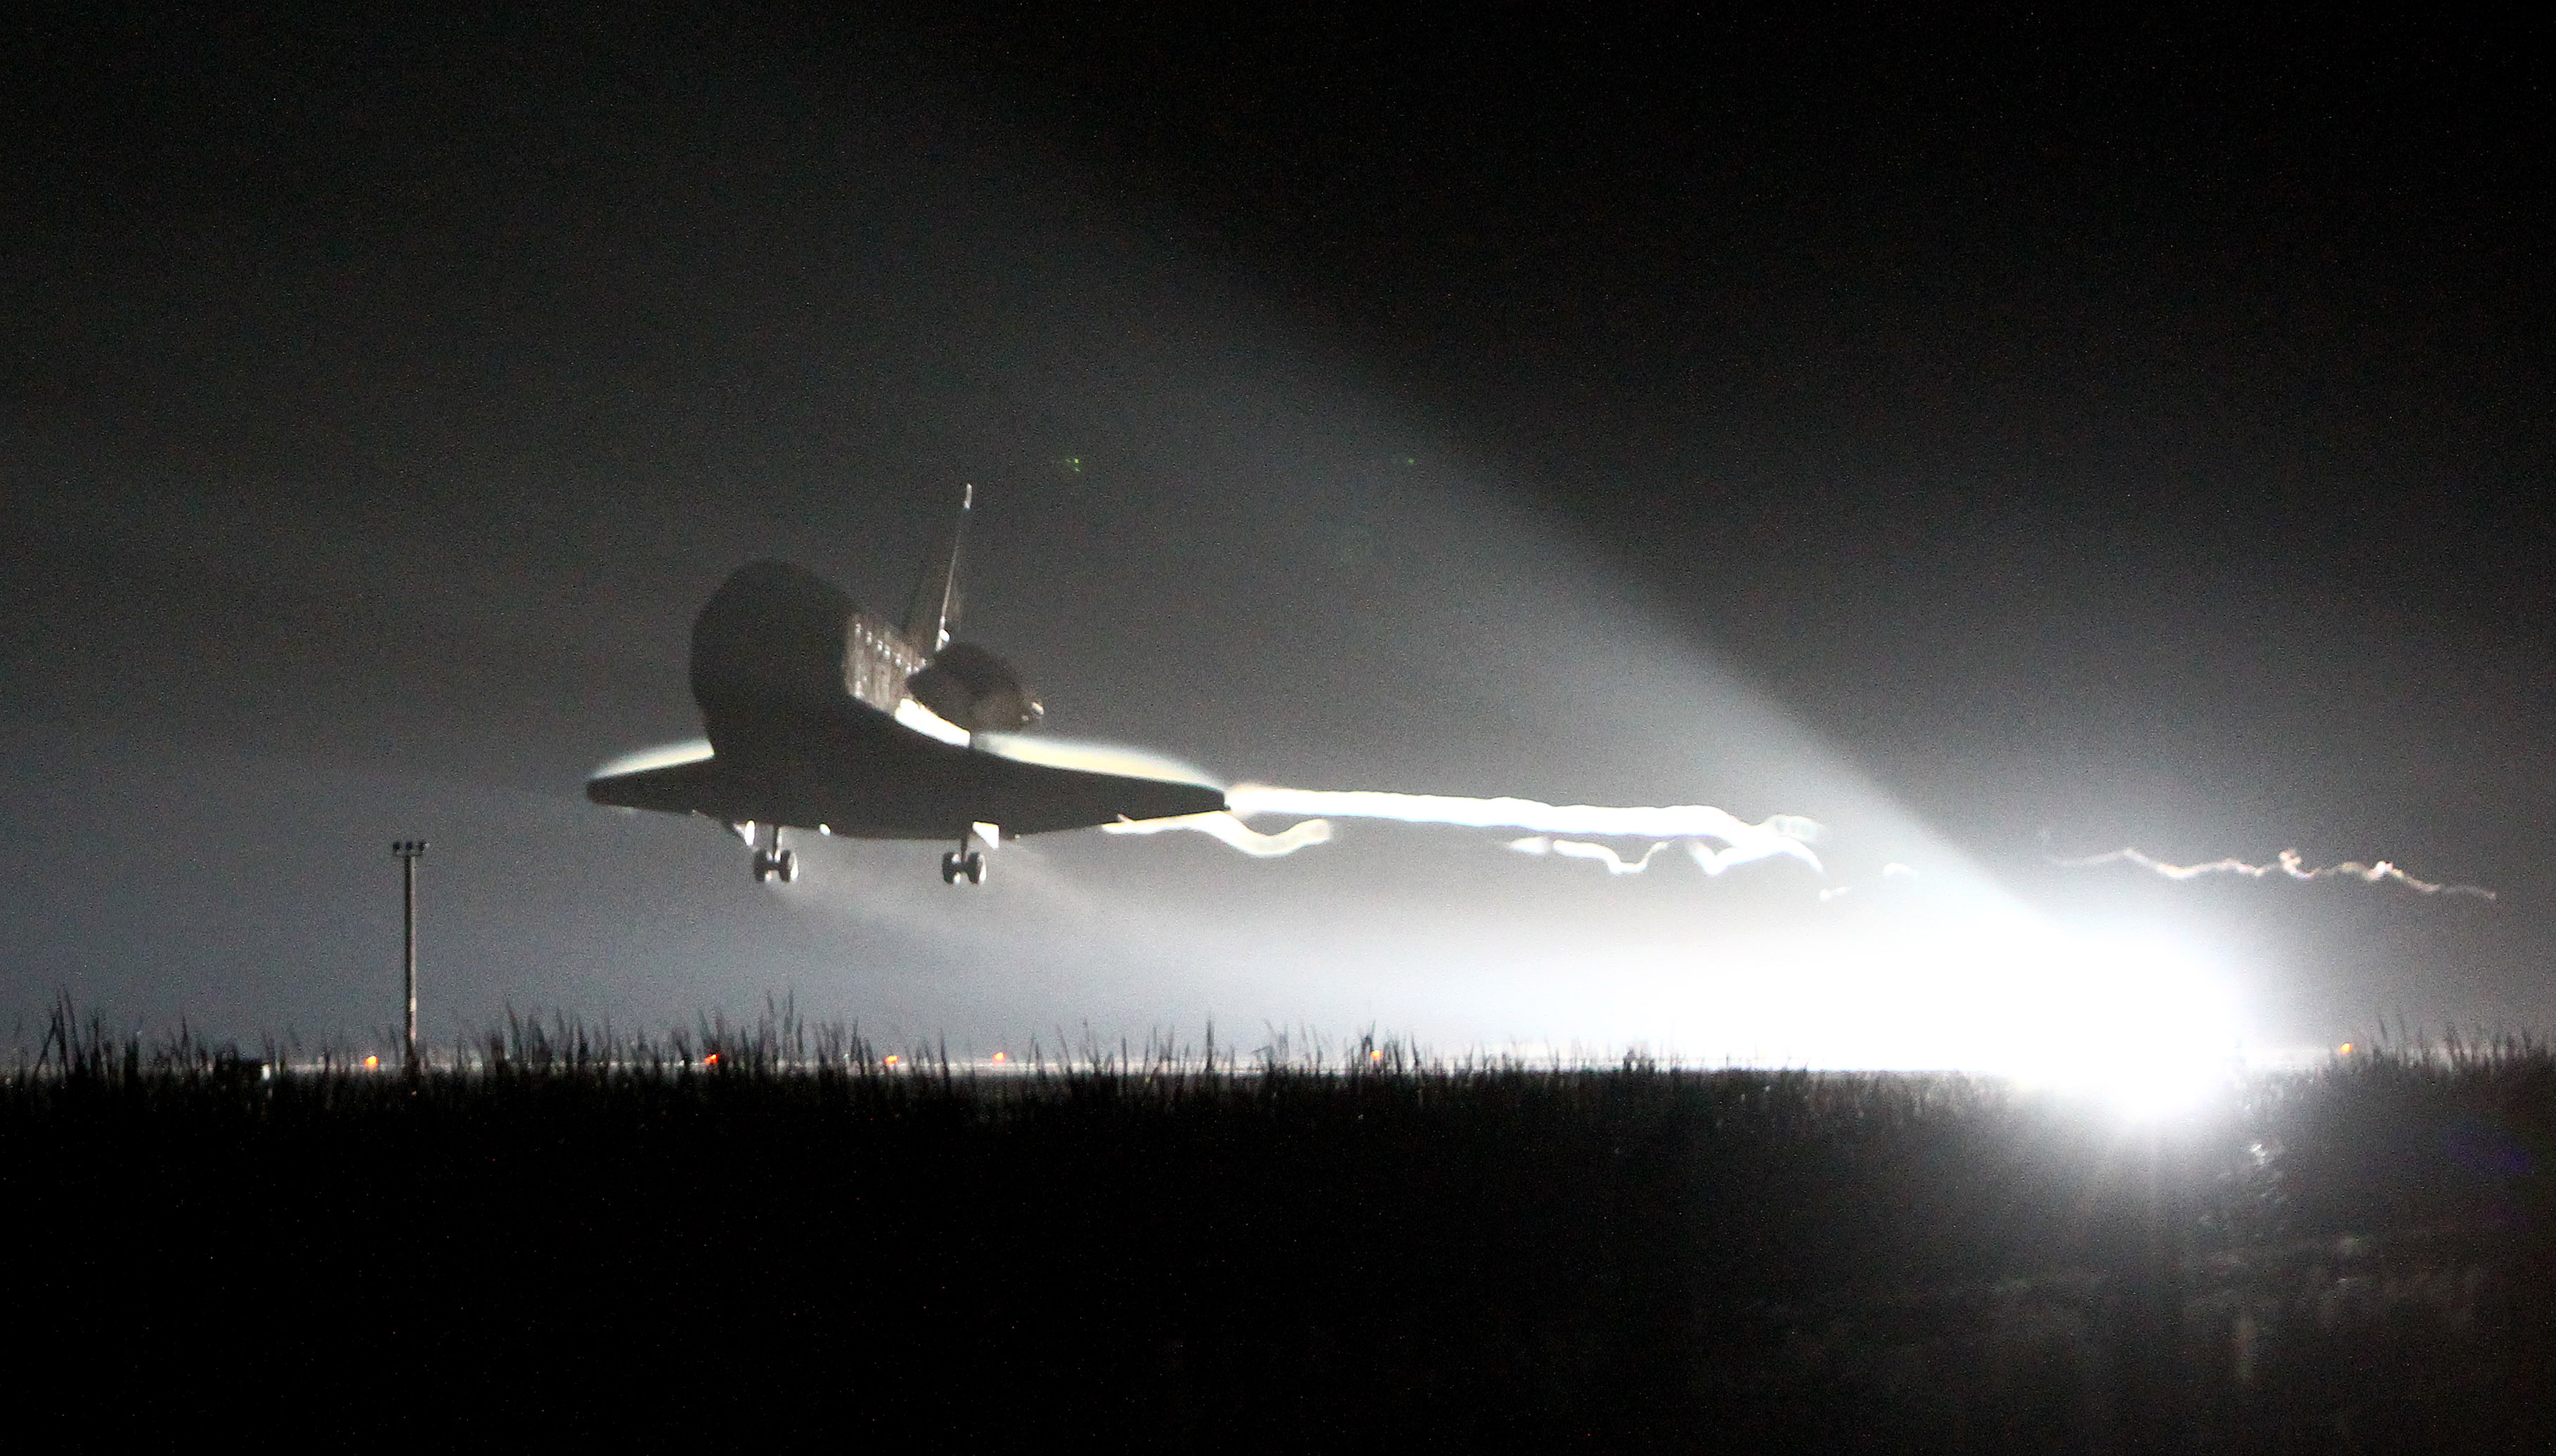 Space Shuttle Endeavour launches on final mission